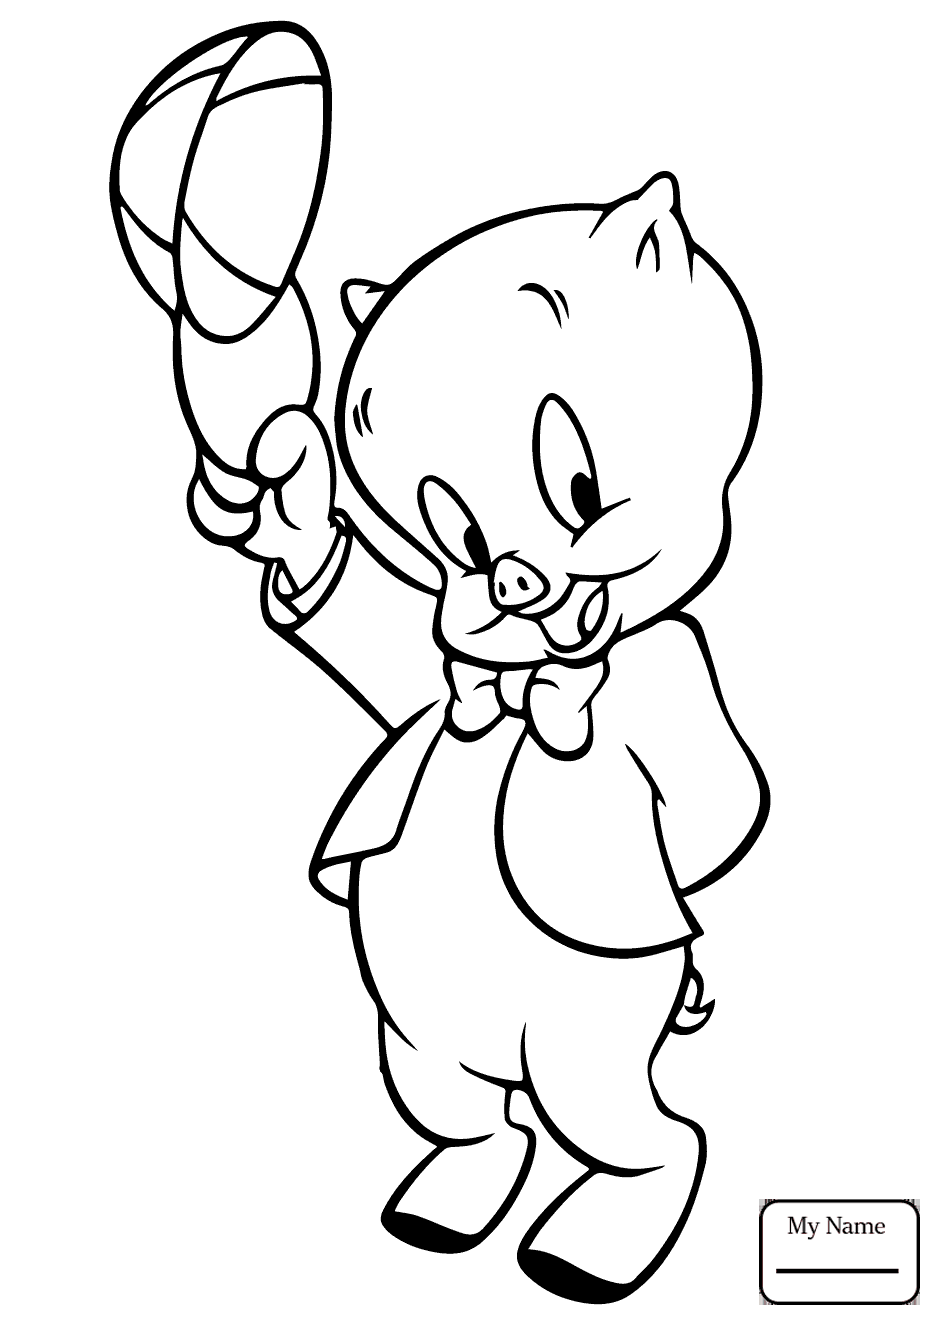 937x1326 Baby Looney Tunes Coloring Pages Free For Marvin The Martian Idea